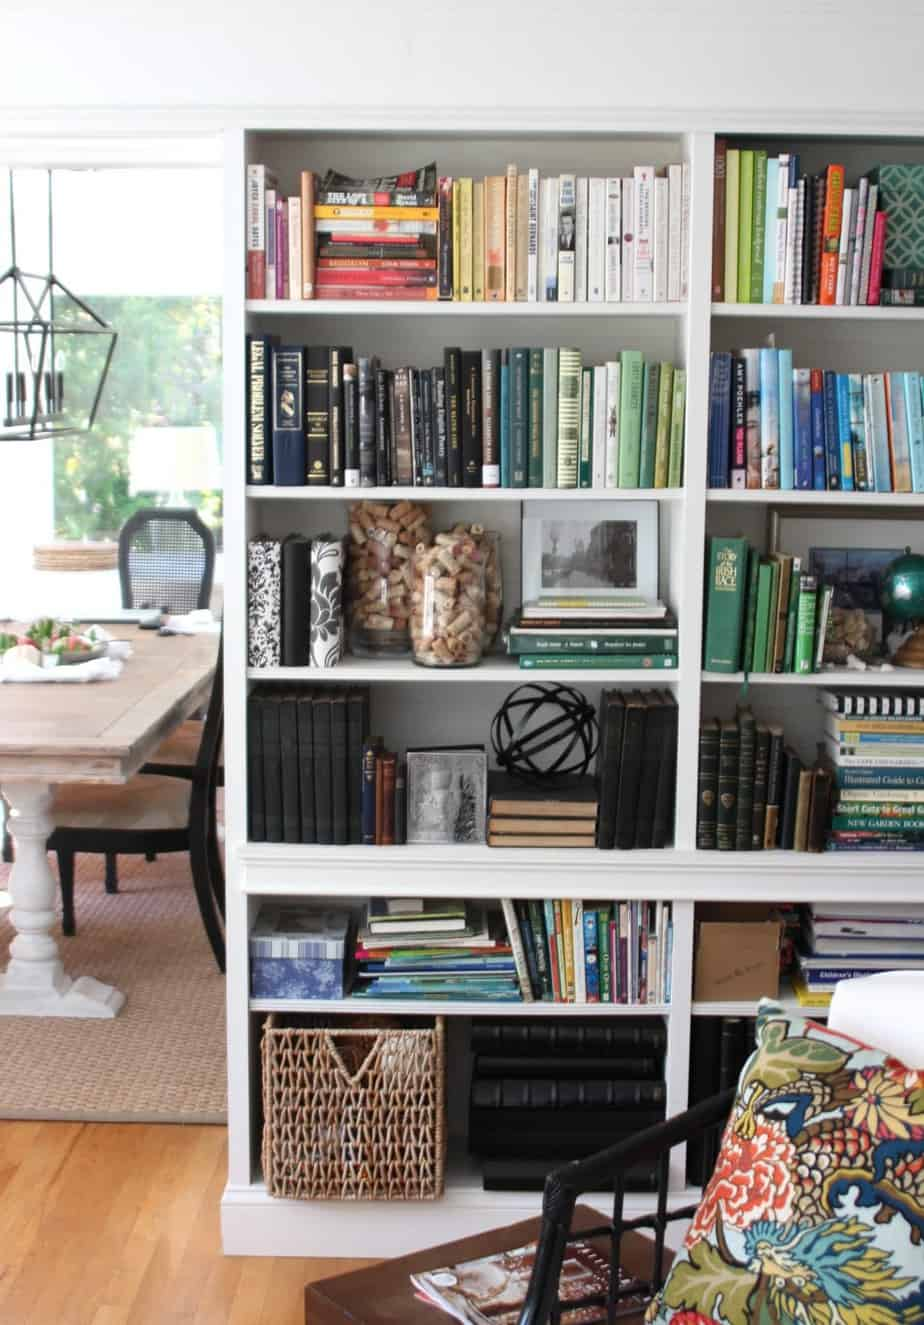 Ikea Billy bookcases are built into a living room creating an entire library wall.